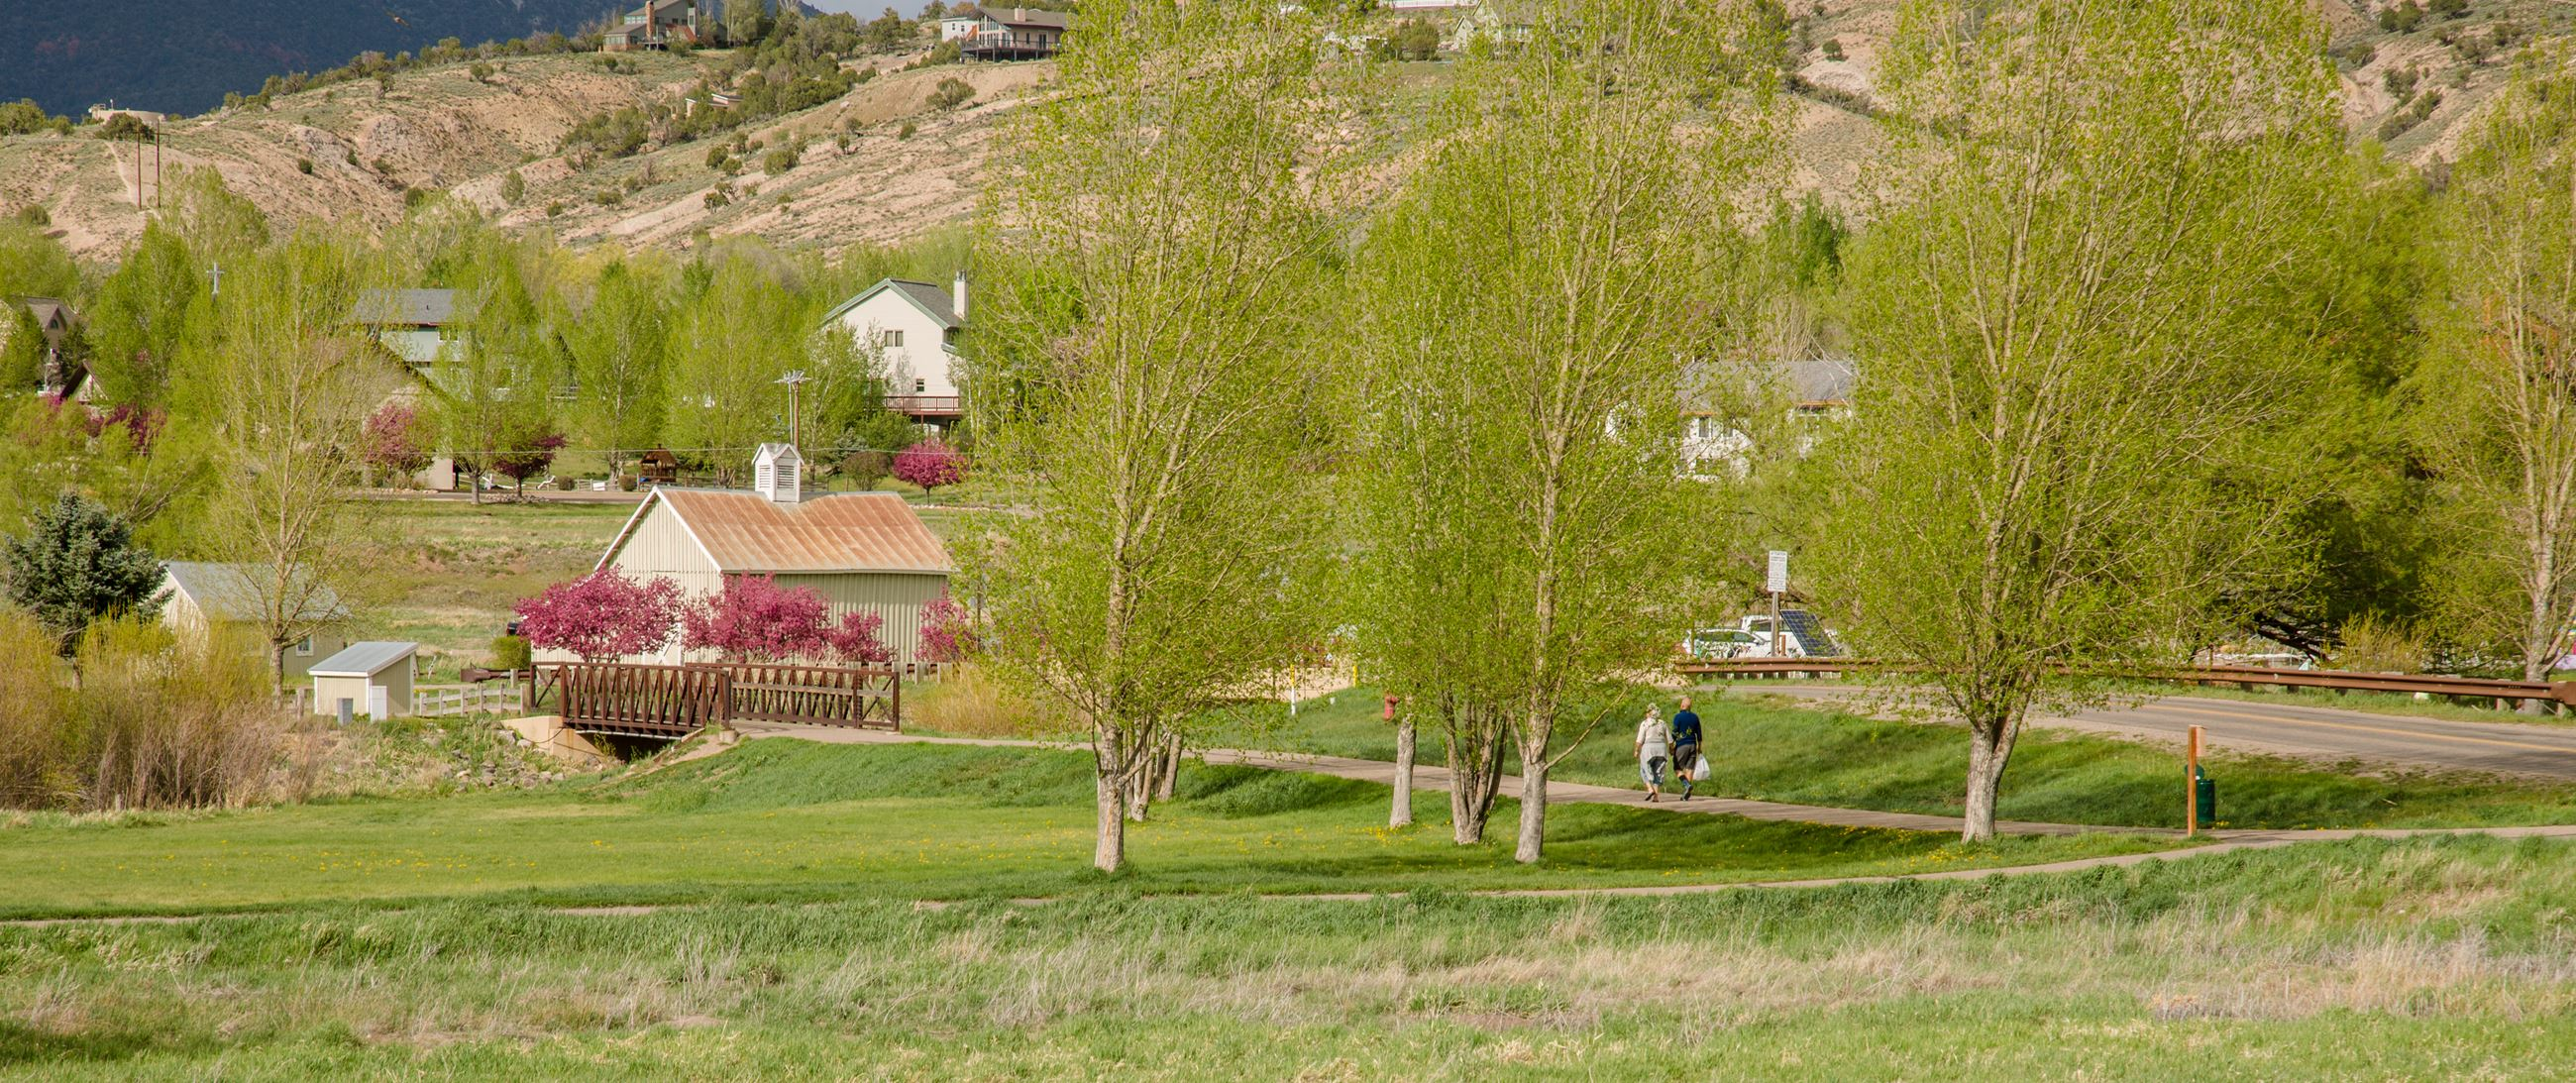 Town of Eagle, CO - Official Website   Official Website